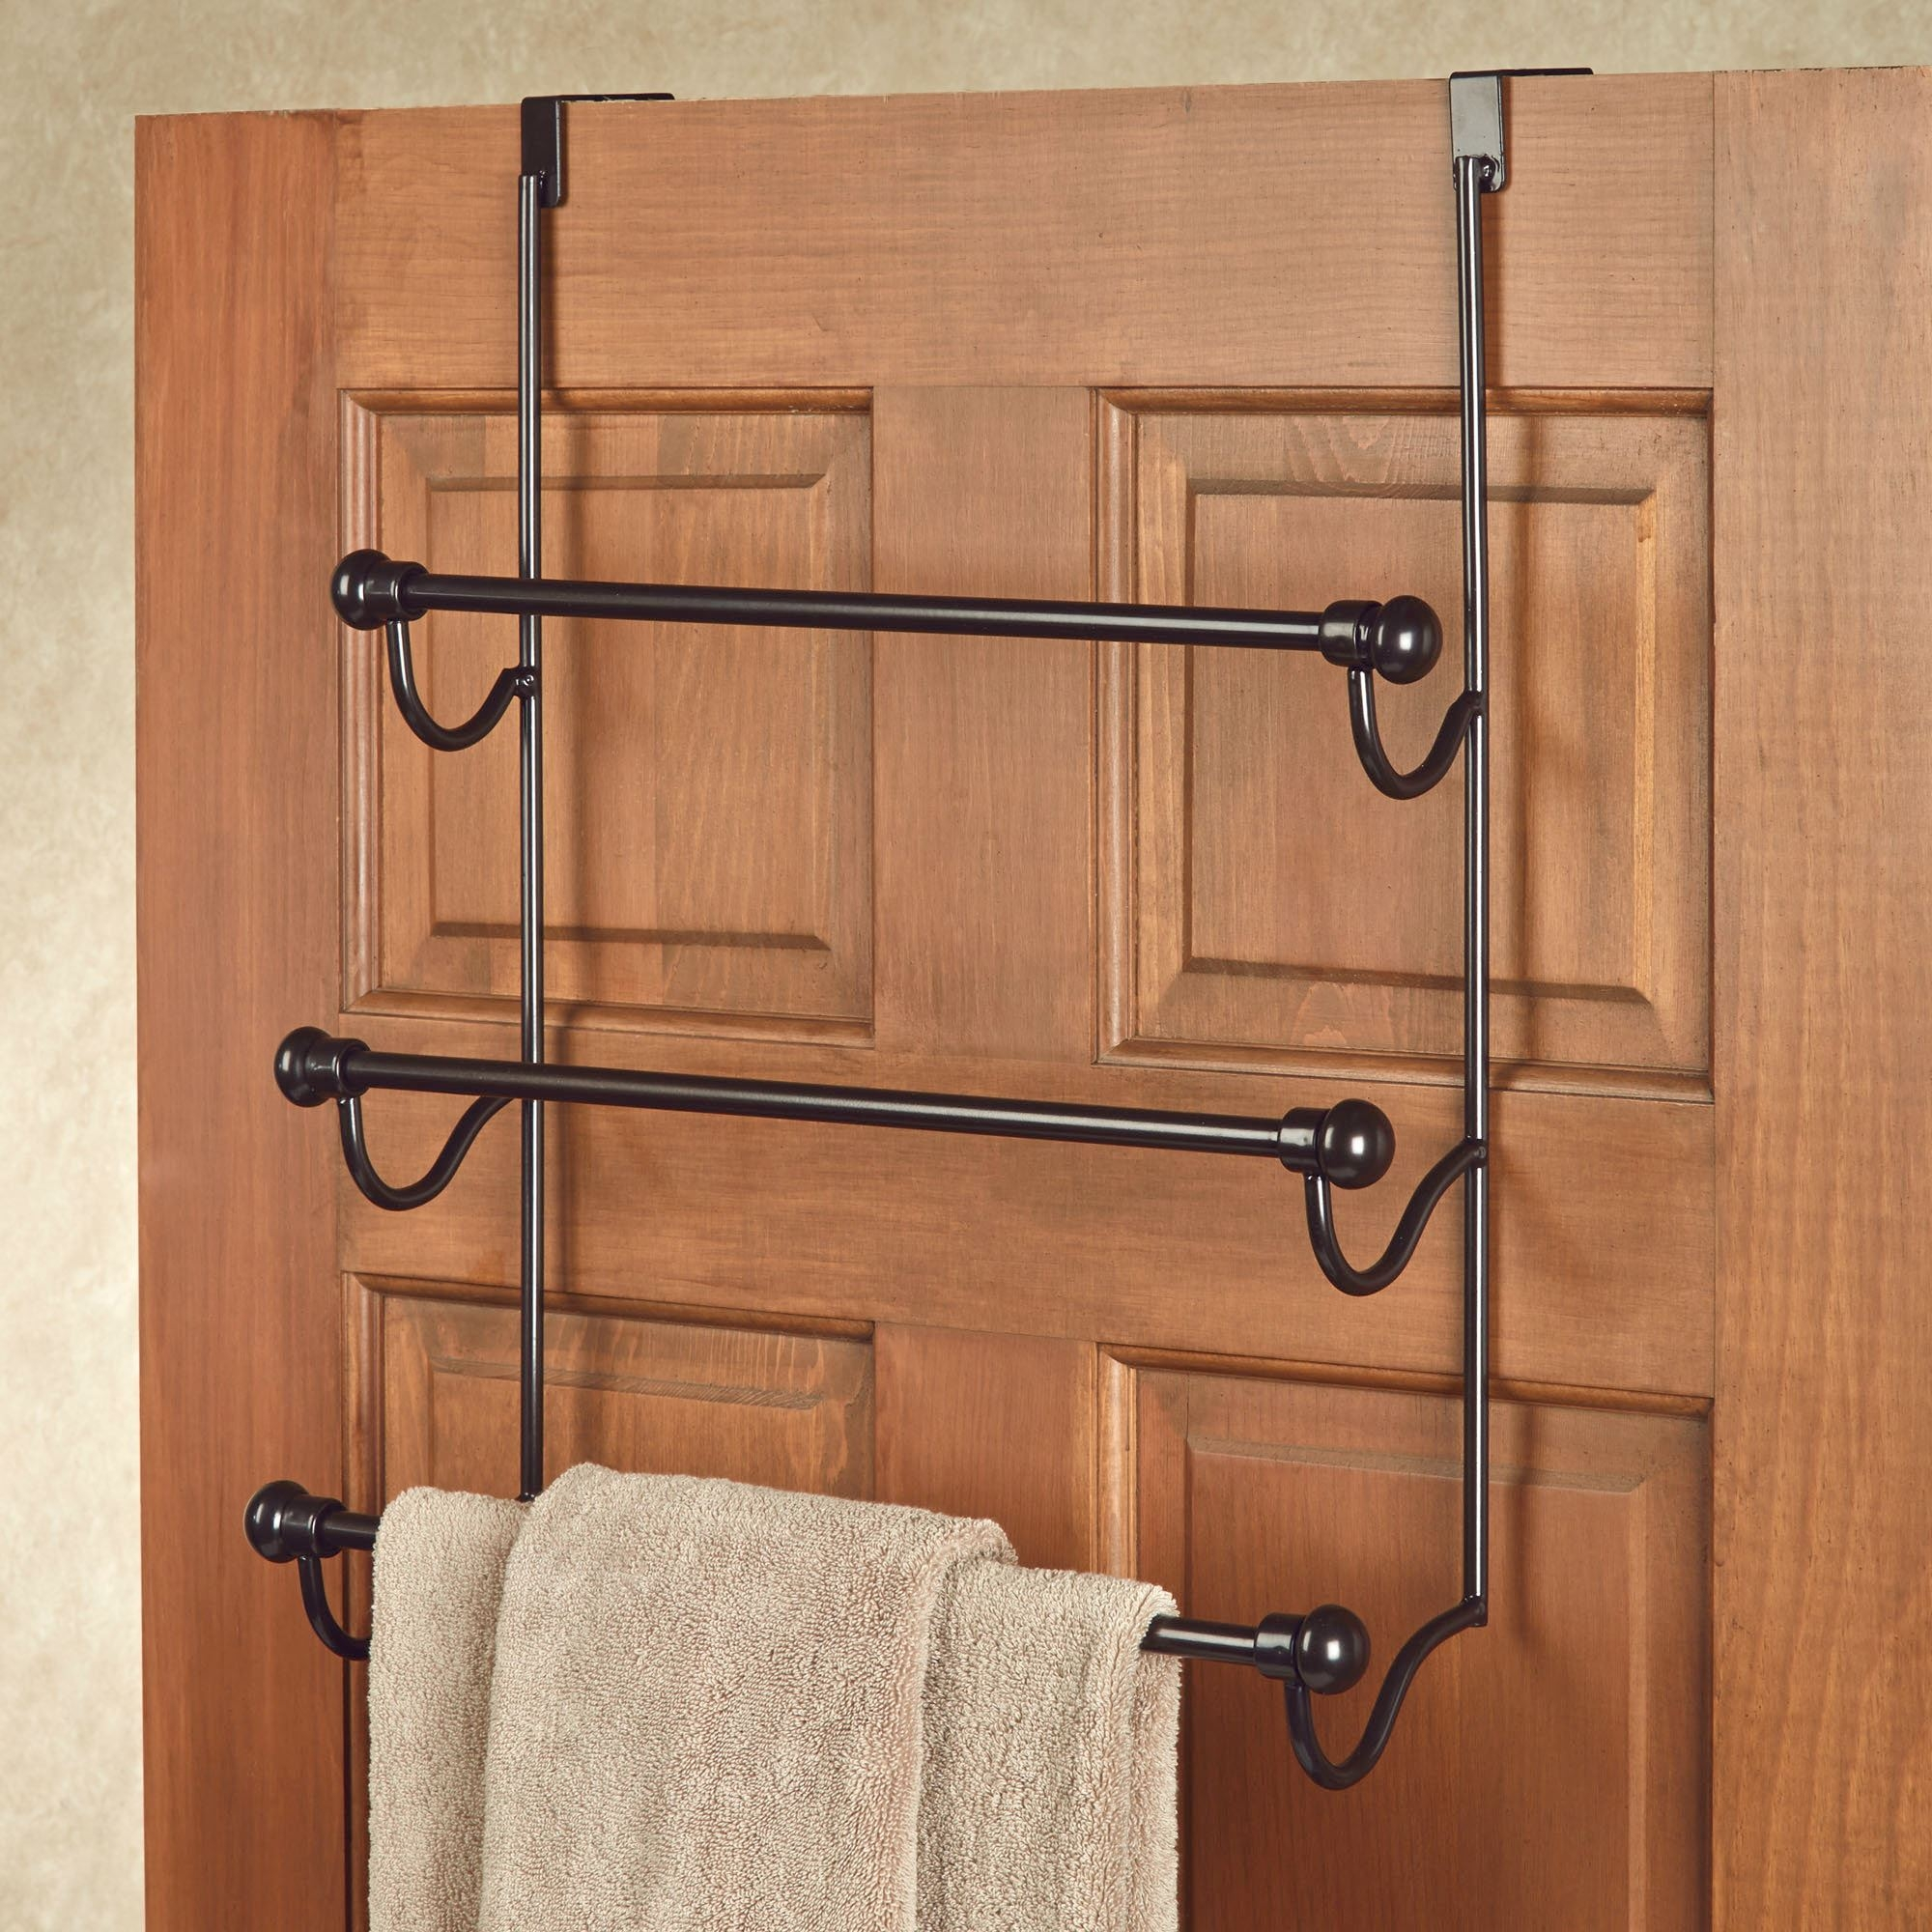 Over The Door Bath Towel Holderbronze over the door three bar towel rack